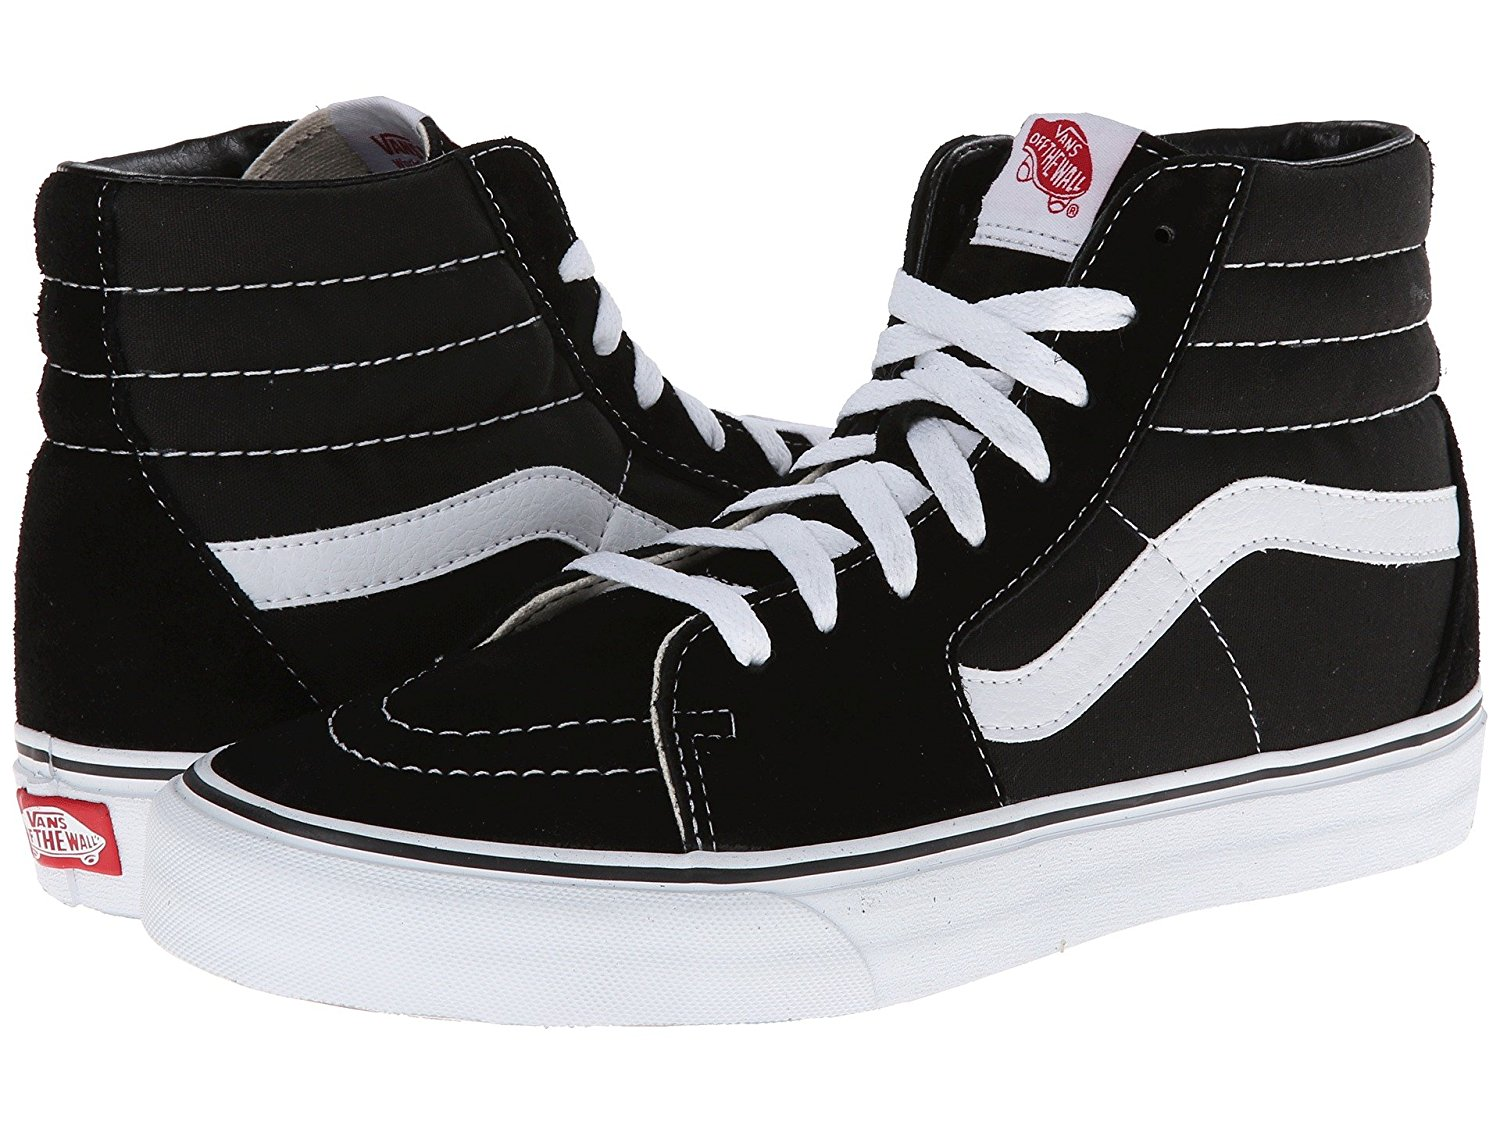 b200982f7e Get Quotations · Vans Men s Sk8-Hi MTE Skate Shoe (10.5 D(M) US